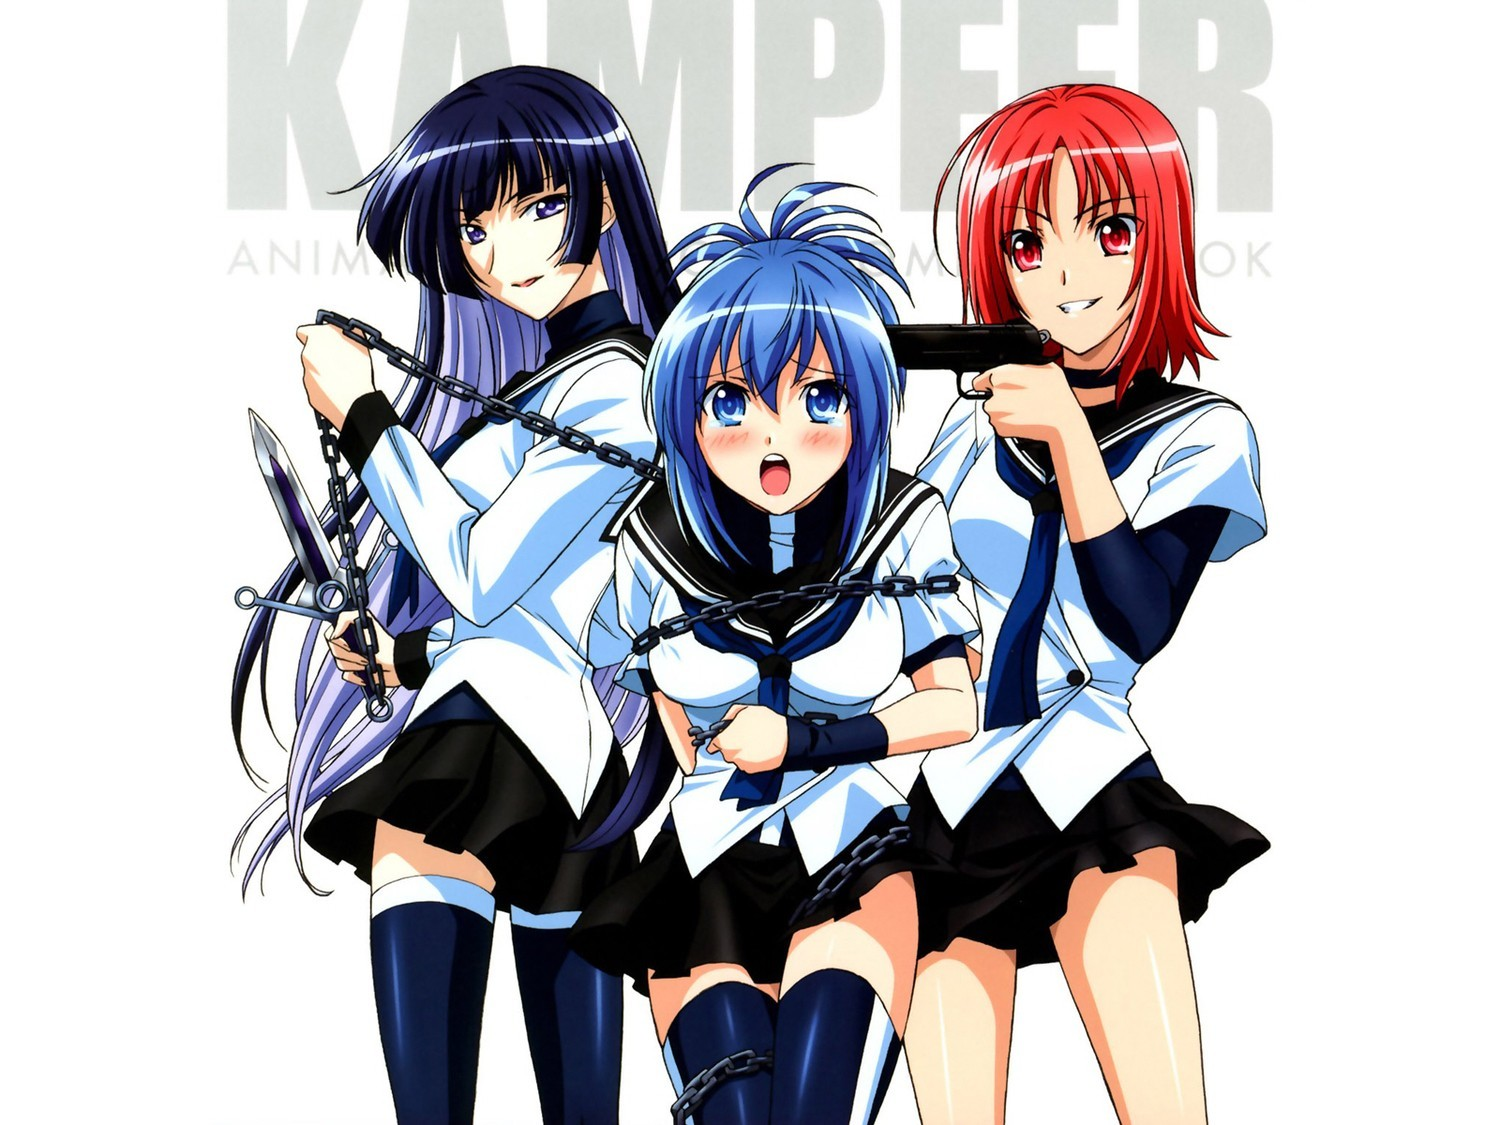 school uniforms kampfer Sangou HD Wallpaper